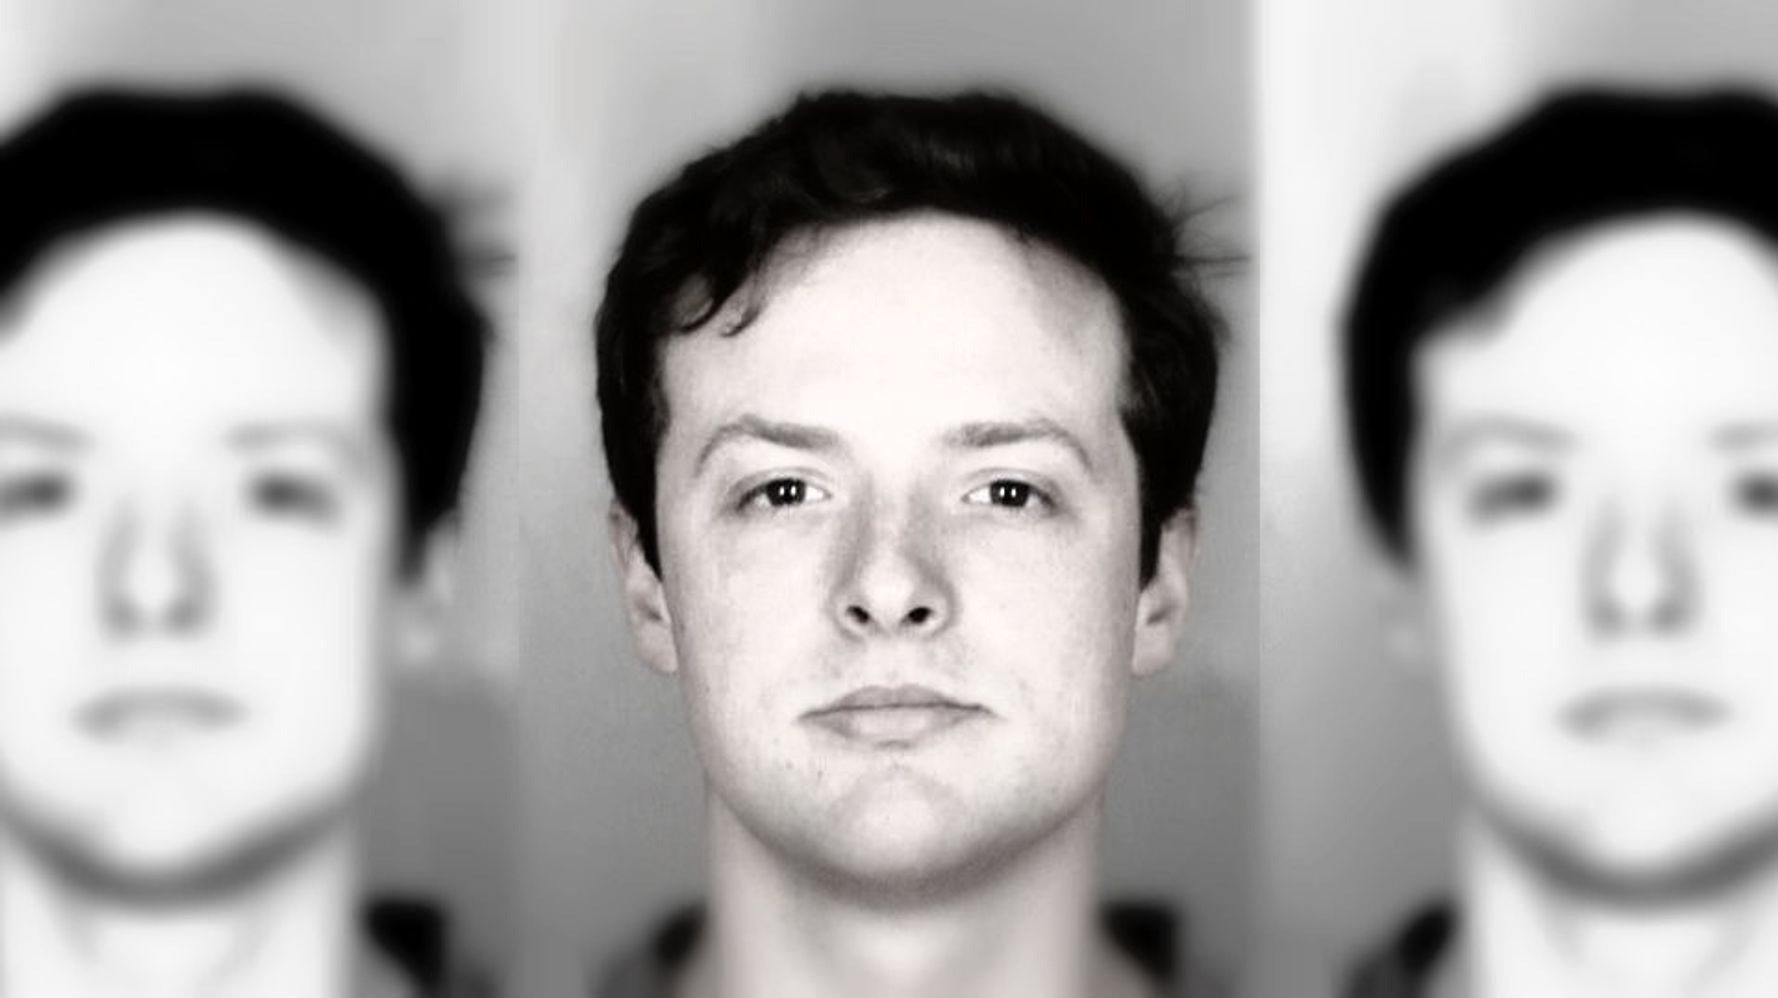 Ex-Frat President Who Was Fined Only $400 For Alleged Rape Still Allowed To Graduate